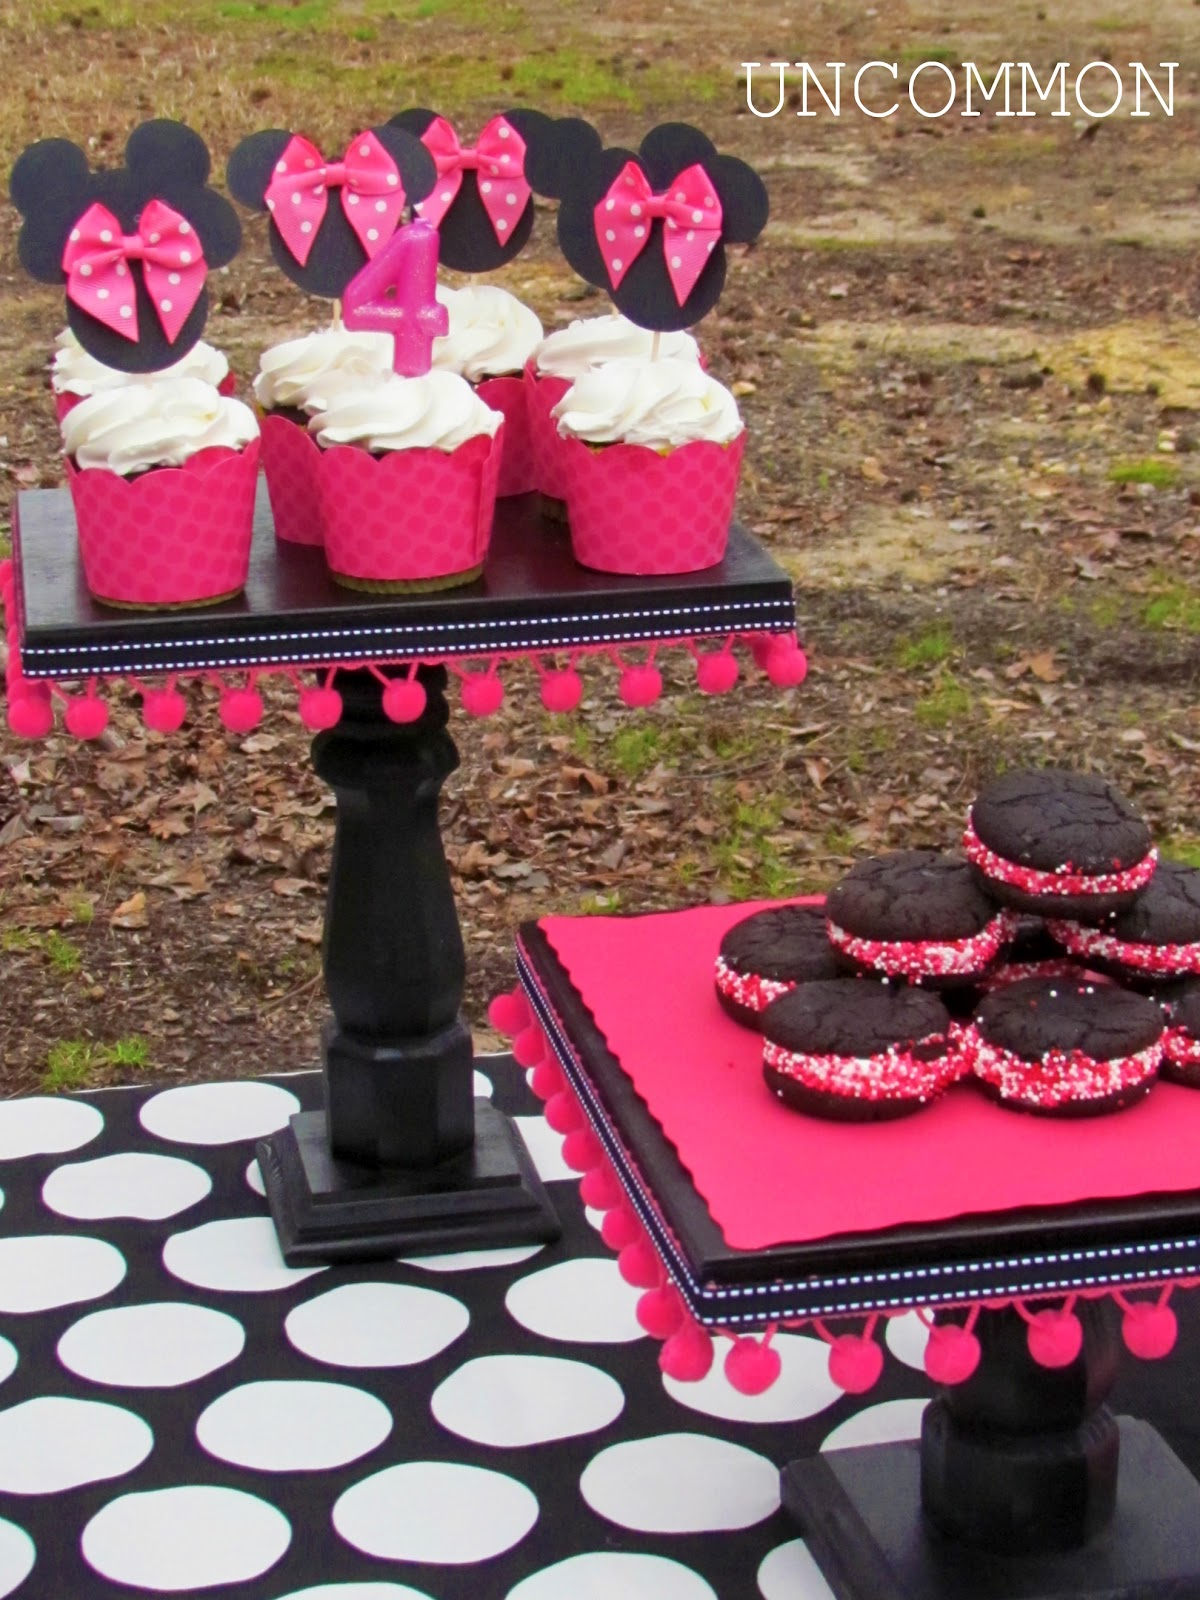 diy cake stands uncommon designs. Black Bedroom Furniture Sets. Home Design Ideas